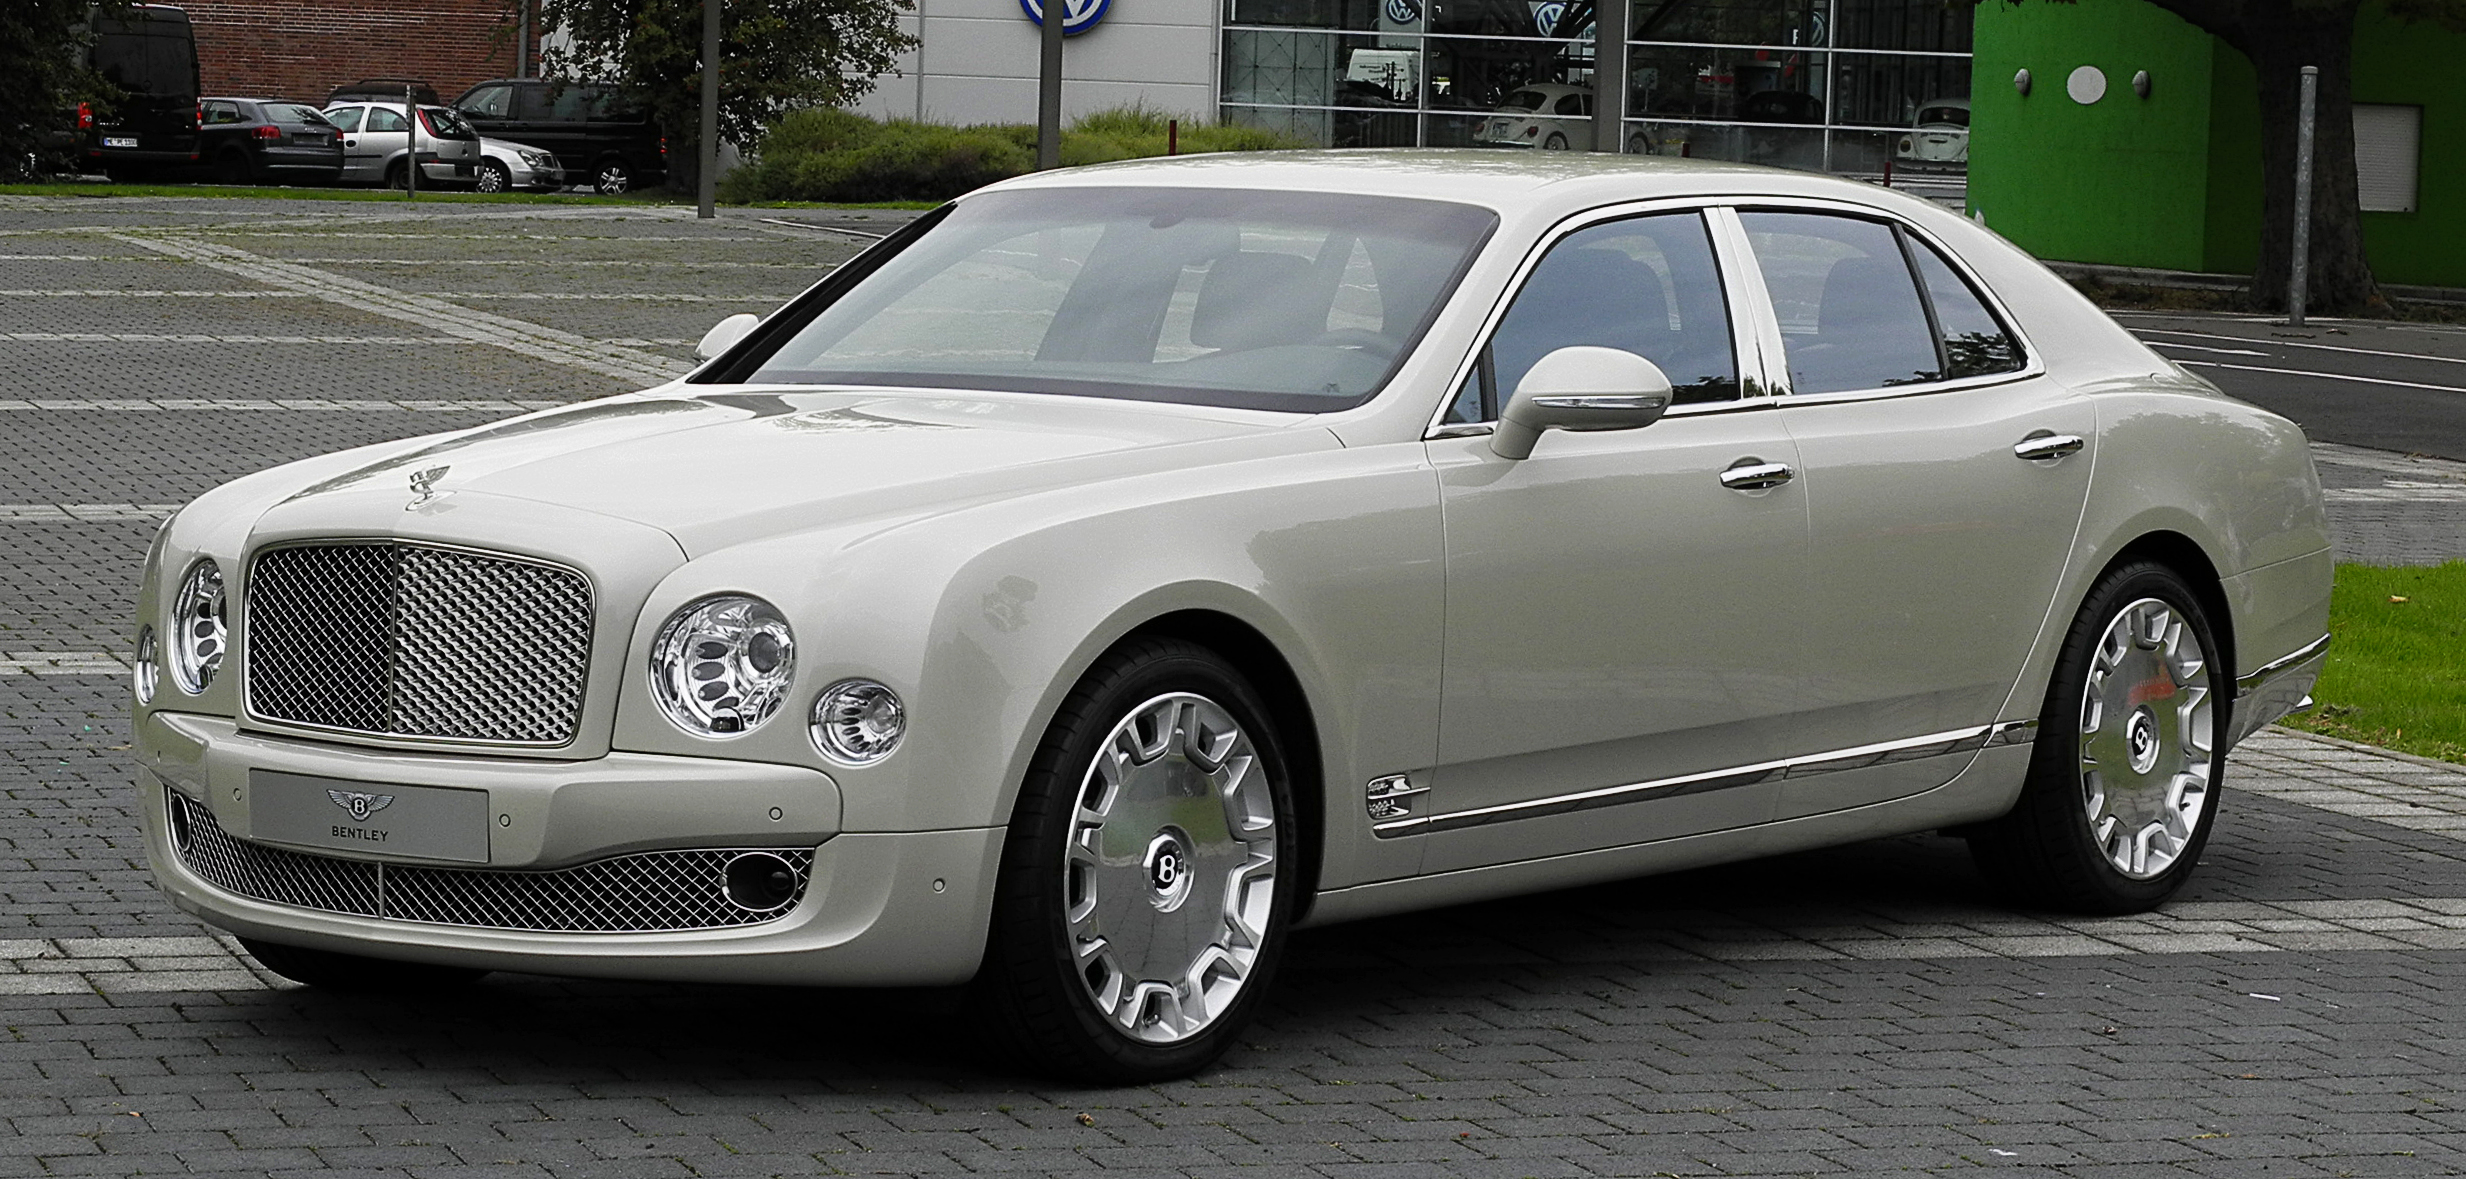 Bentley Mulsanne Wikiwand